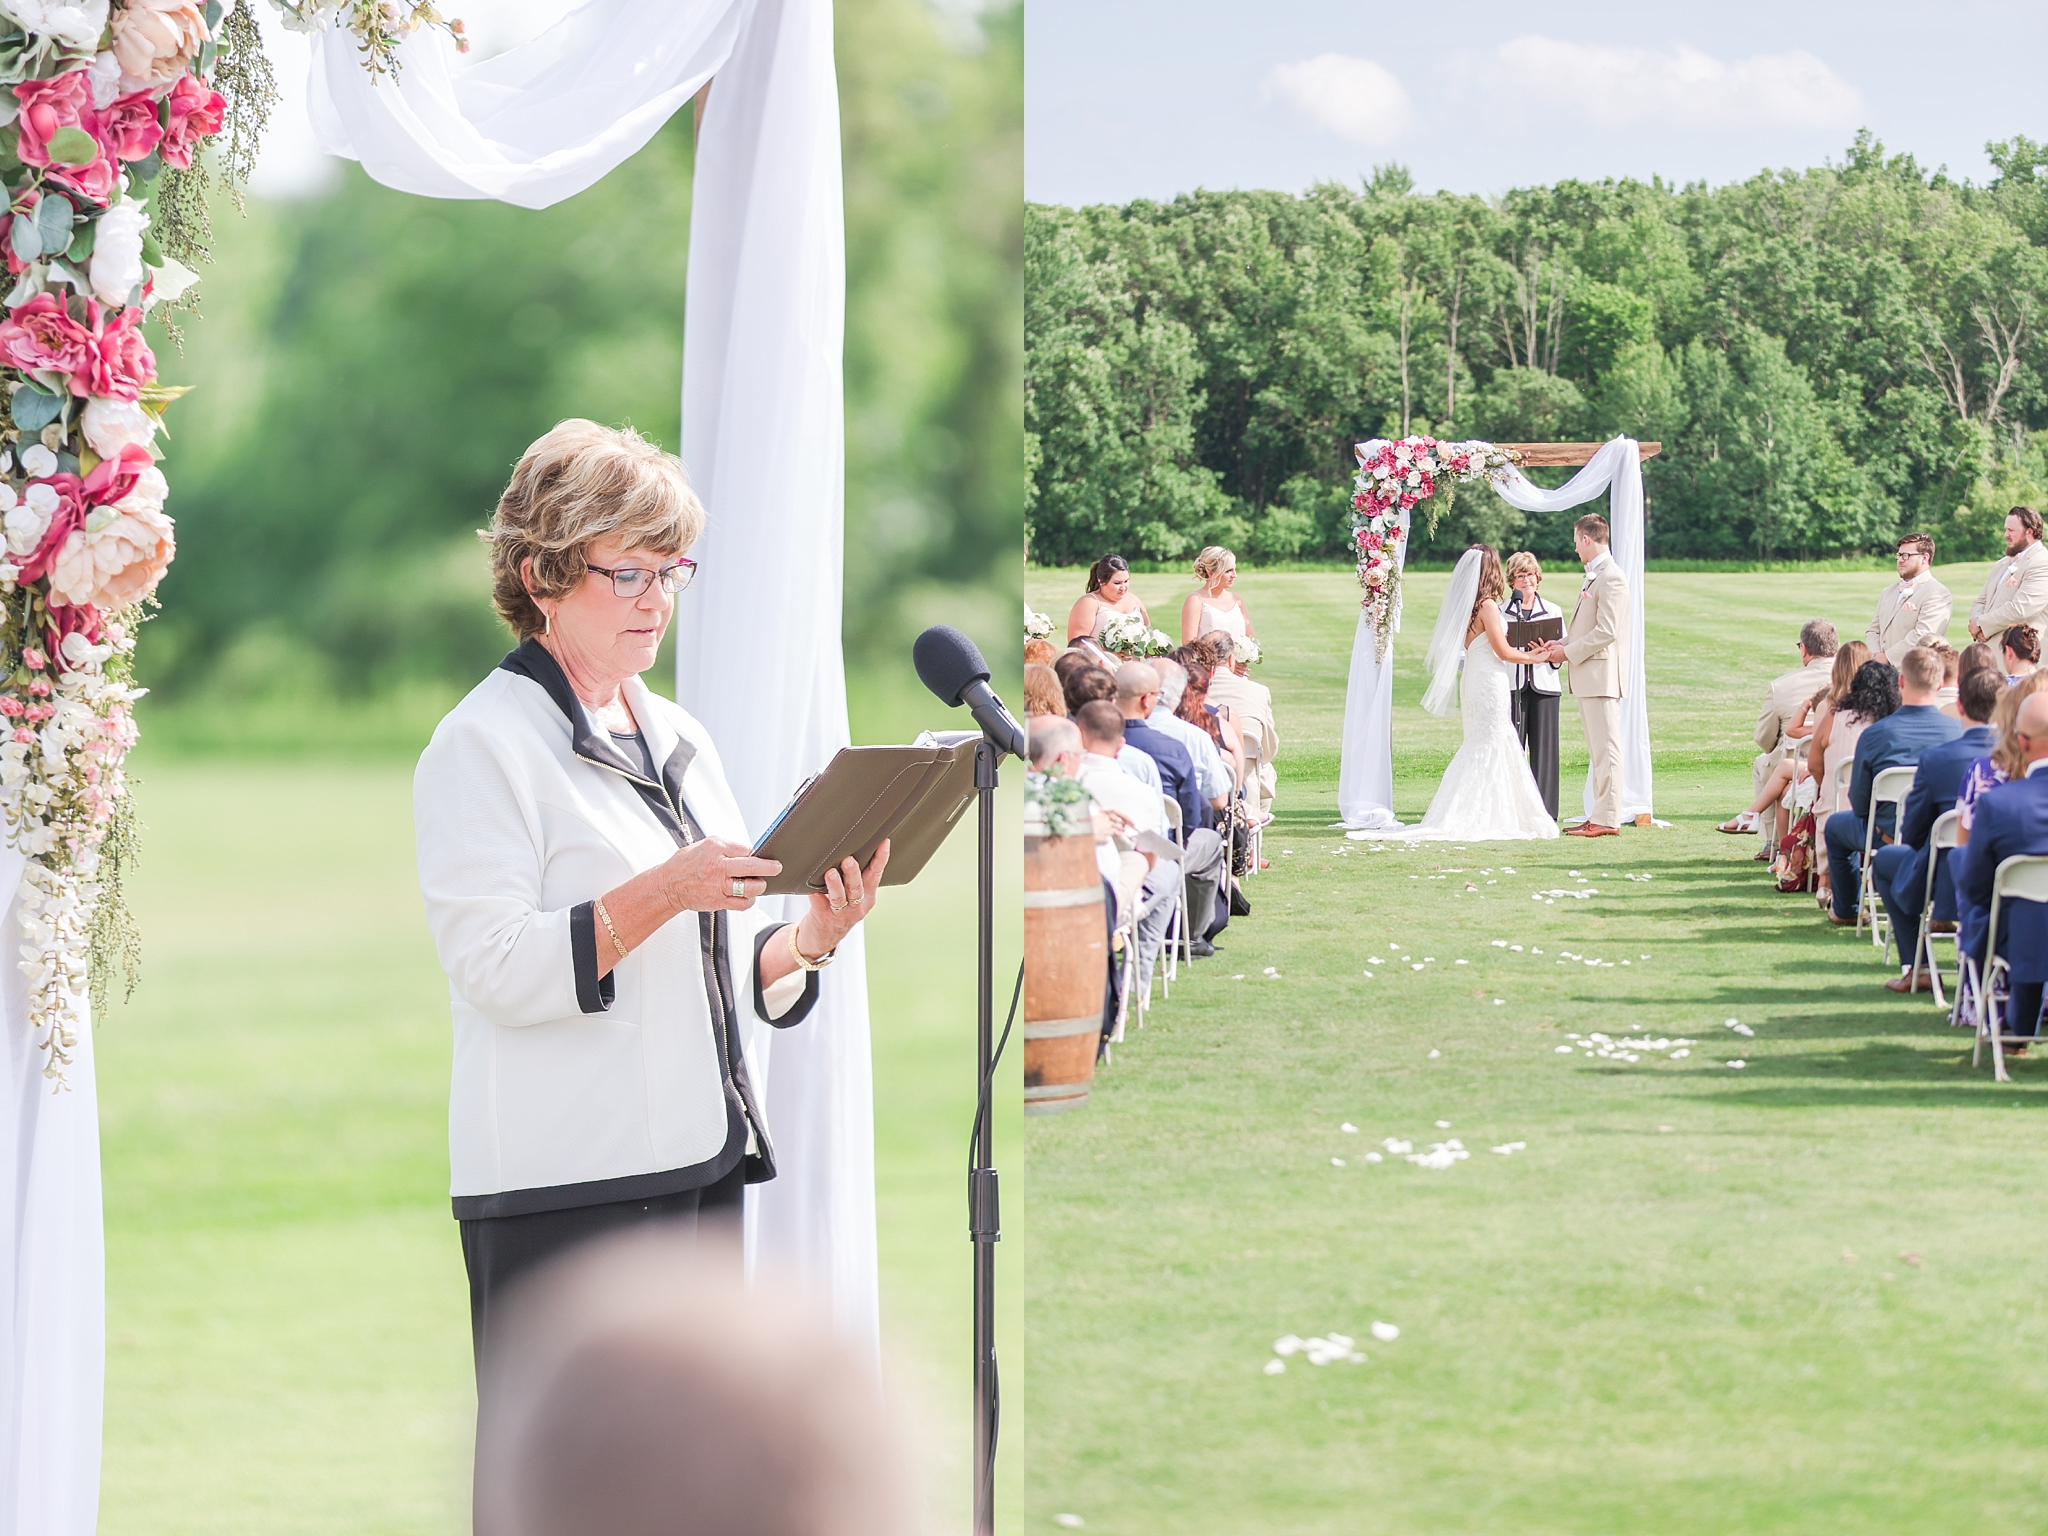 candid-timeless-wedding-photos-at-the-captains-club-in-grand-blanc-michigan-by-courtney-carolyn-photography_0041.jpg